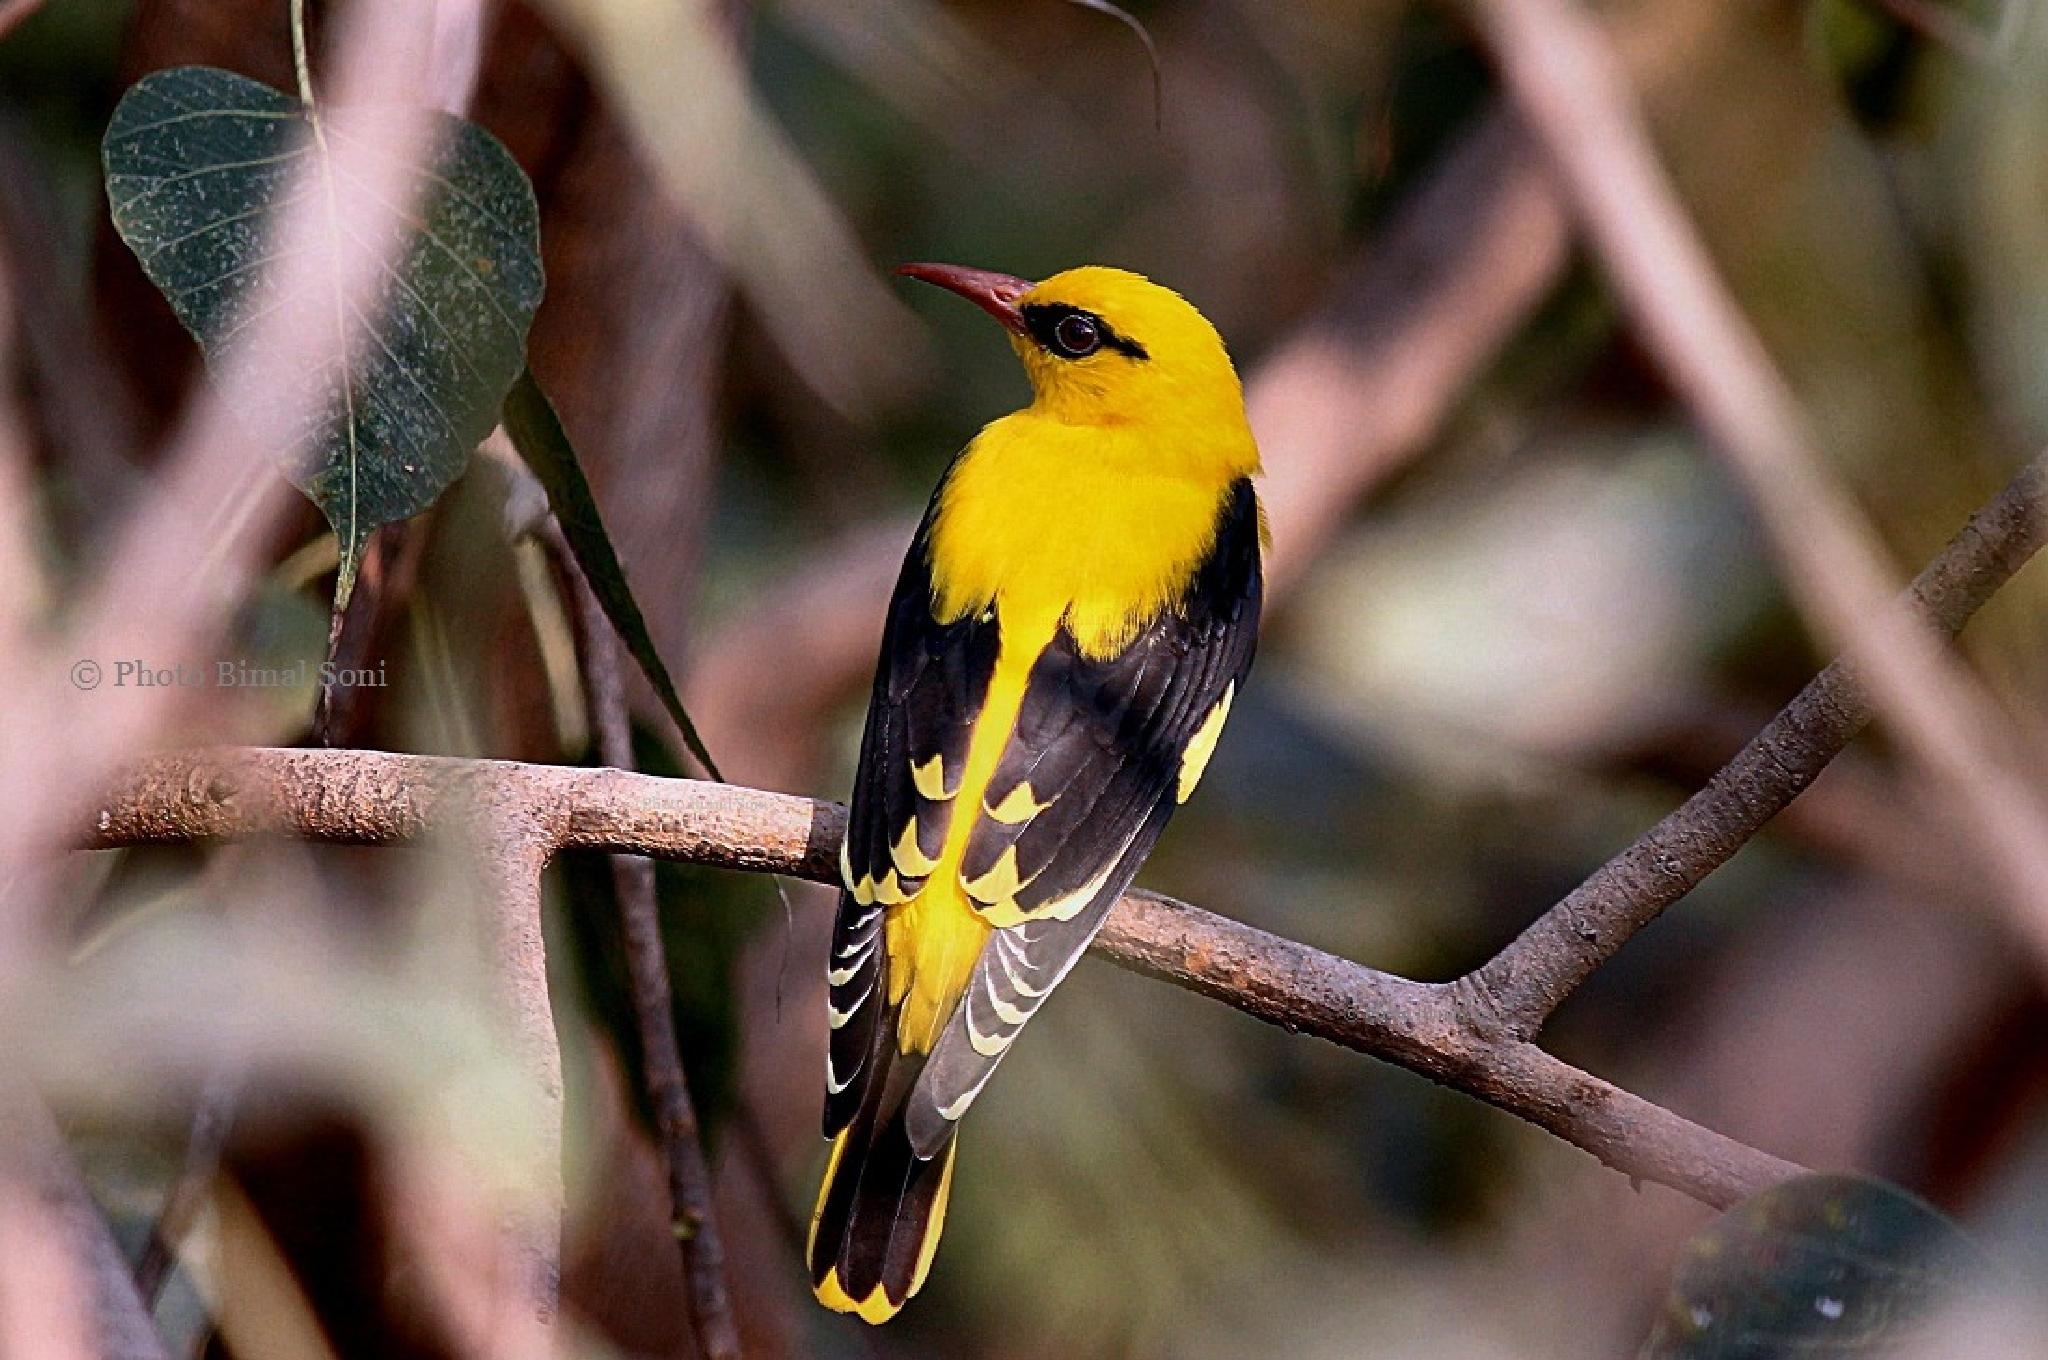 Indian_golden_oriole (male) by Bimal Soni